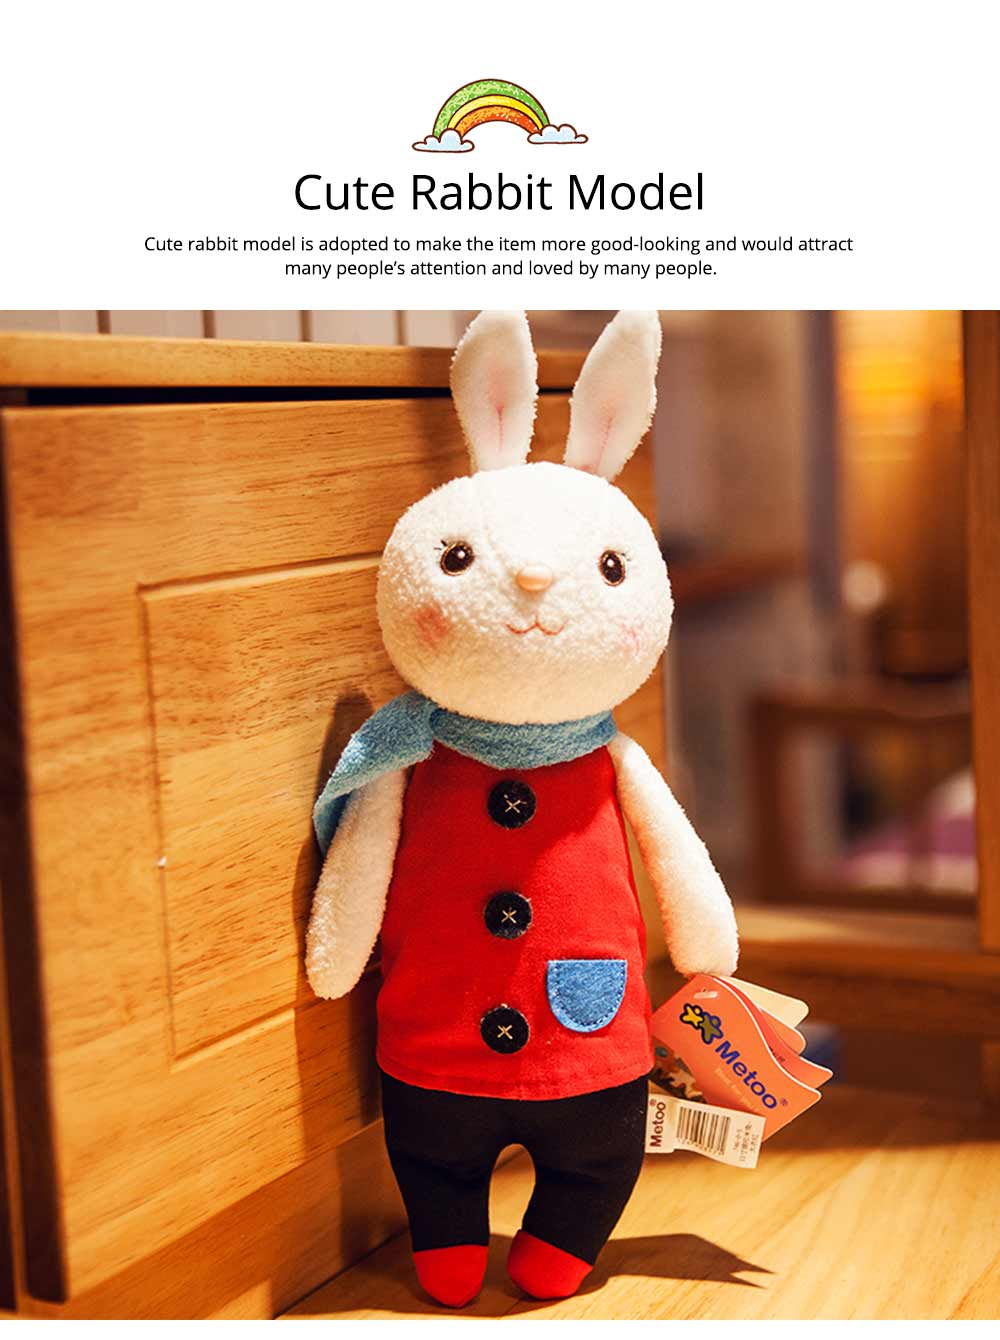 Cute Cartoon Tiramitu Rabbit Plush Stuffed Toy, Ultrasoft Smooth Children's Day Present Doll 5